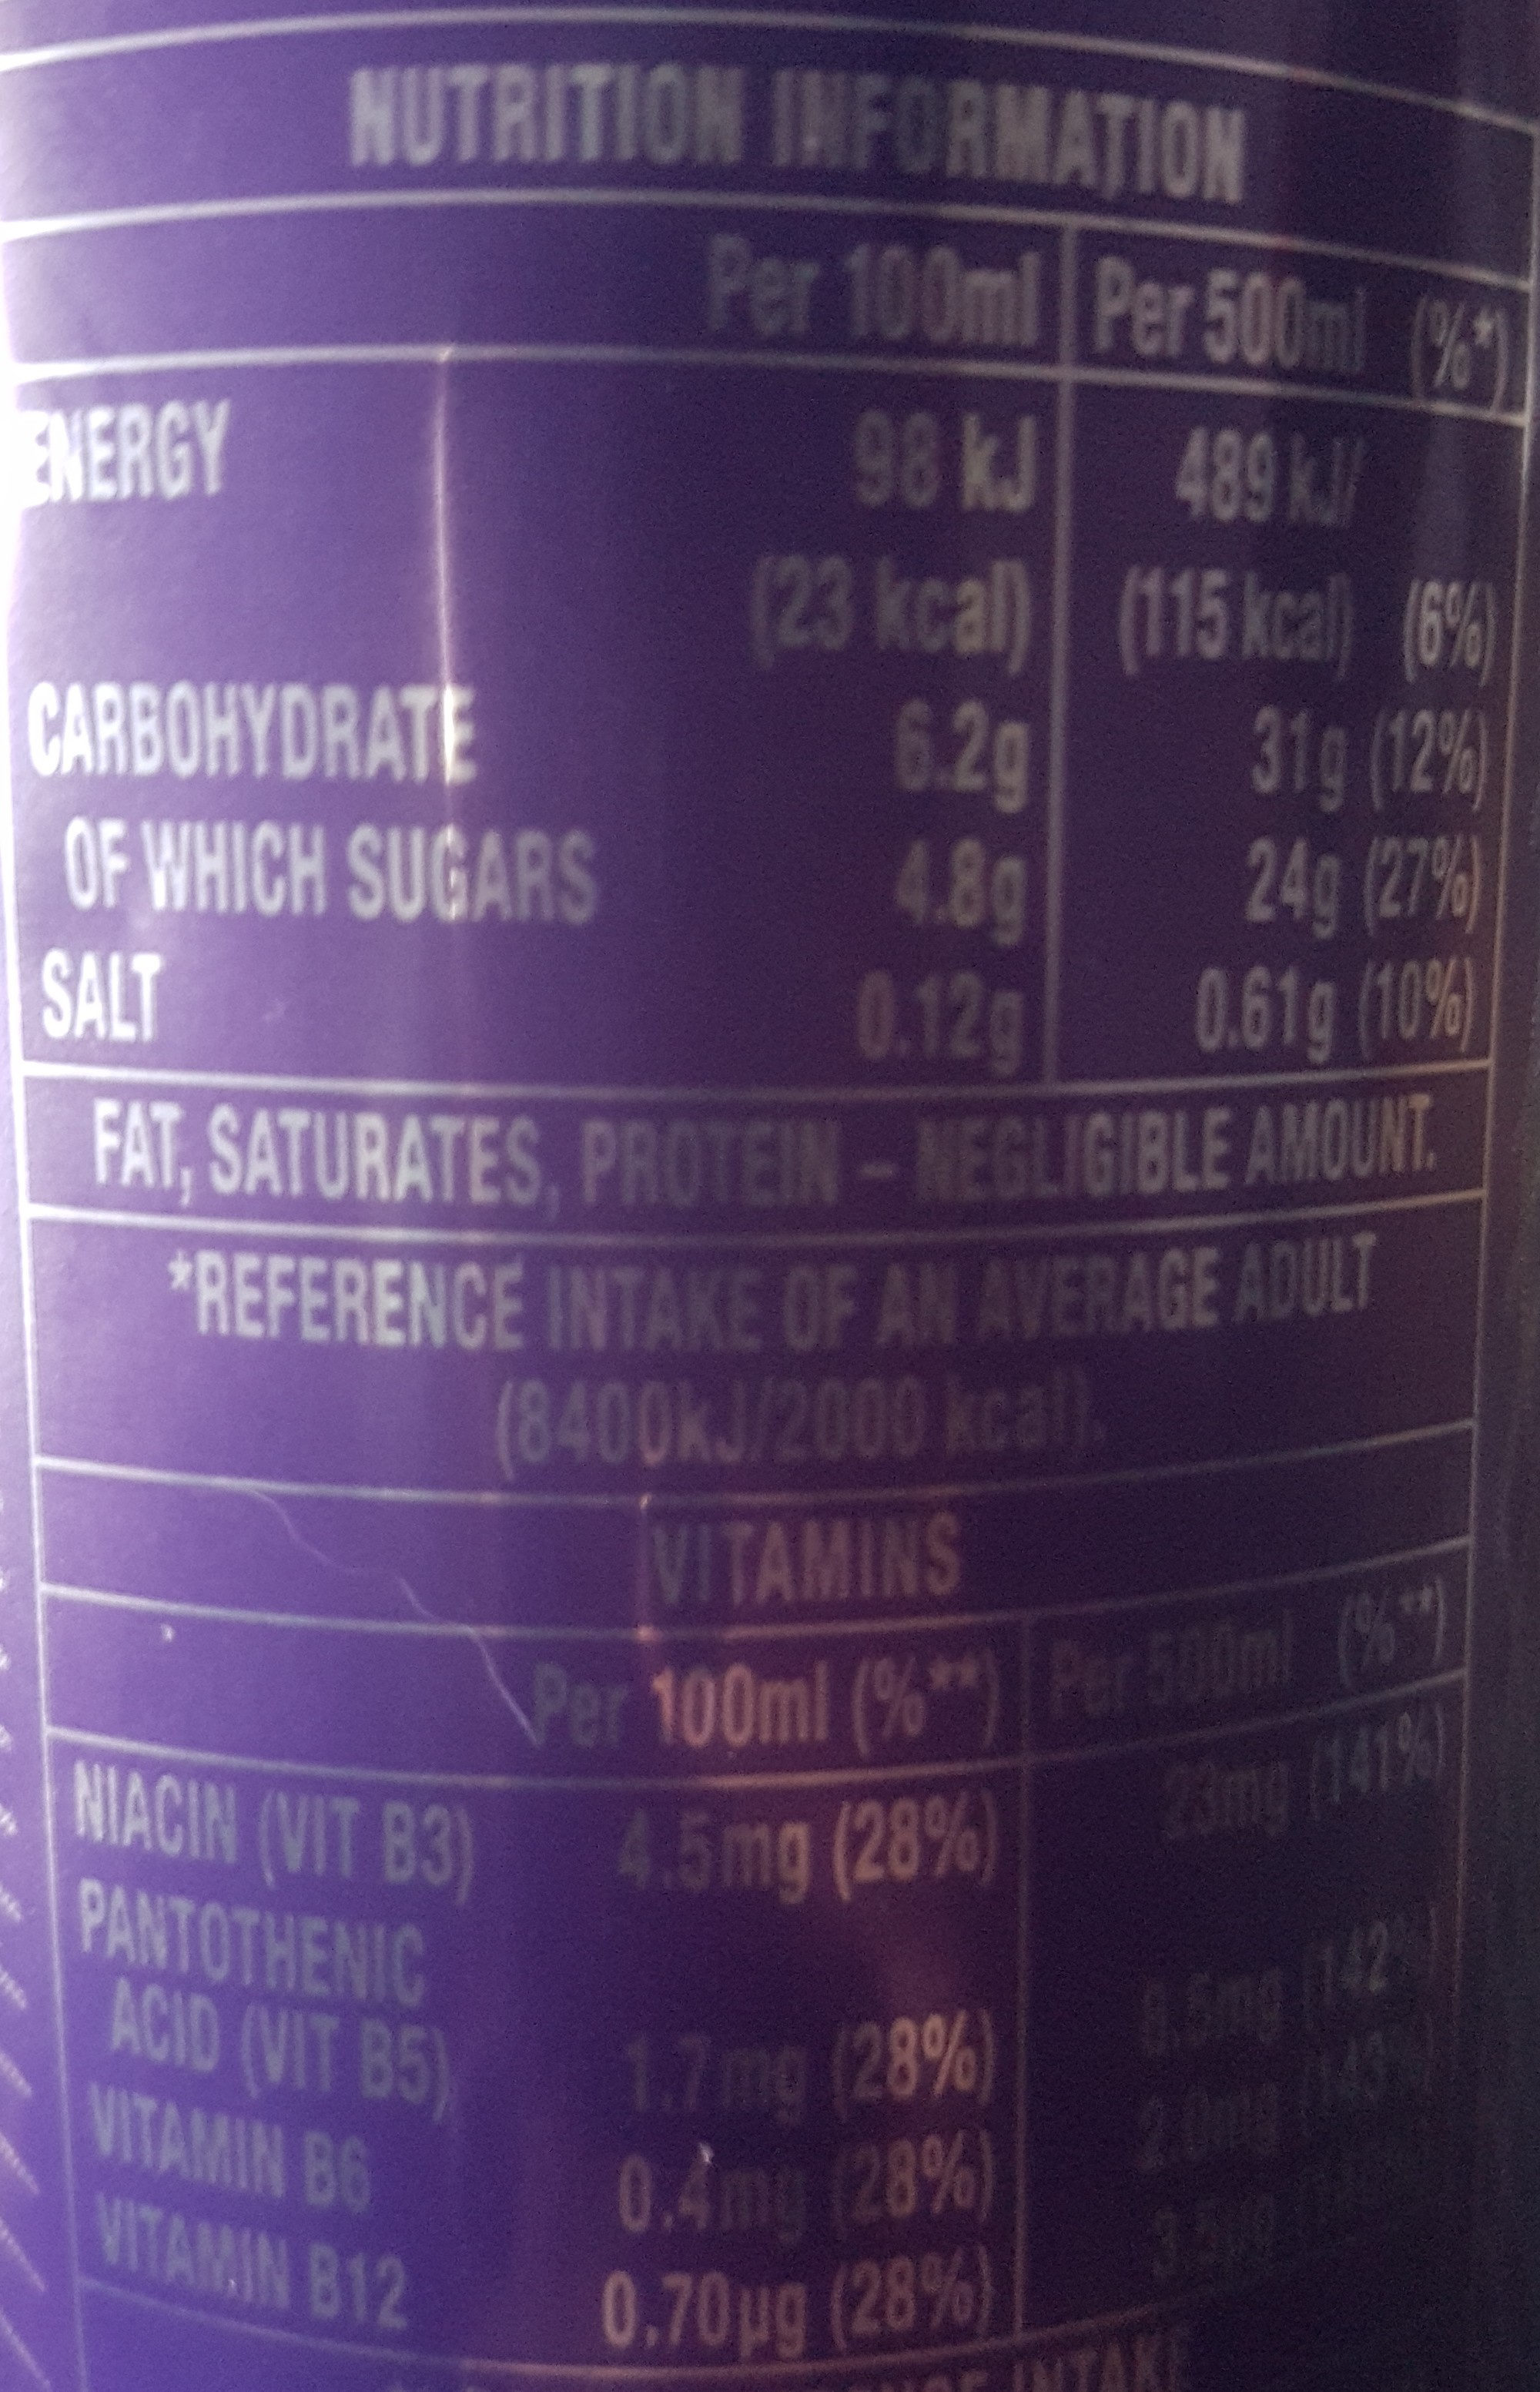 Relentless Passion Punch - Nutrition facts